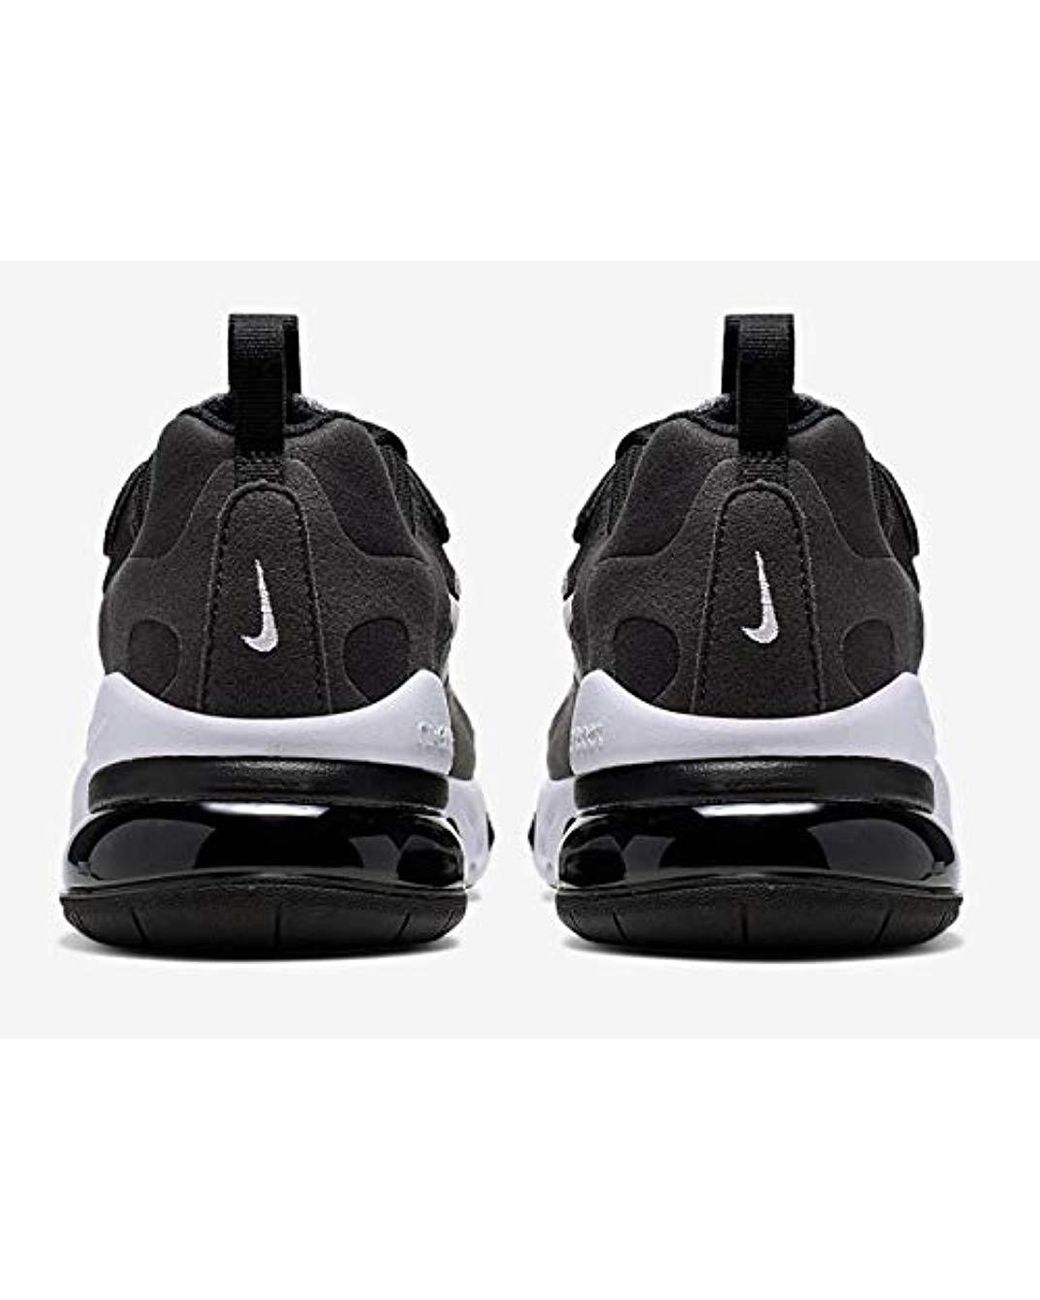 Nike Rubber Unisex Sneaker Shoes Air Max 270 React In Black